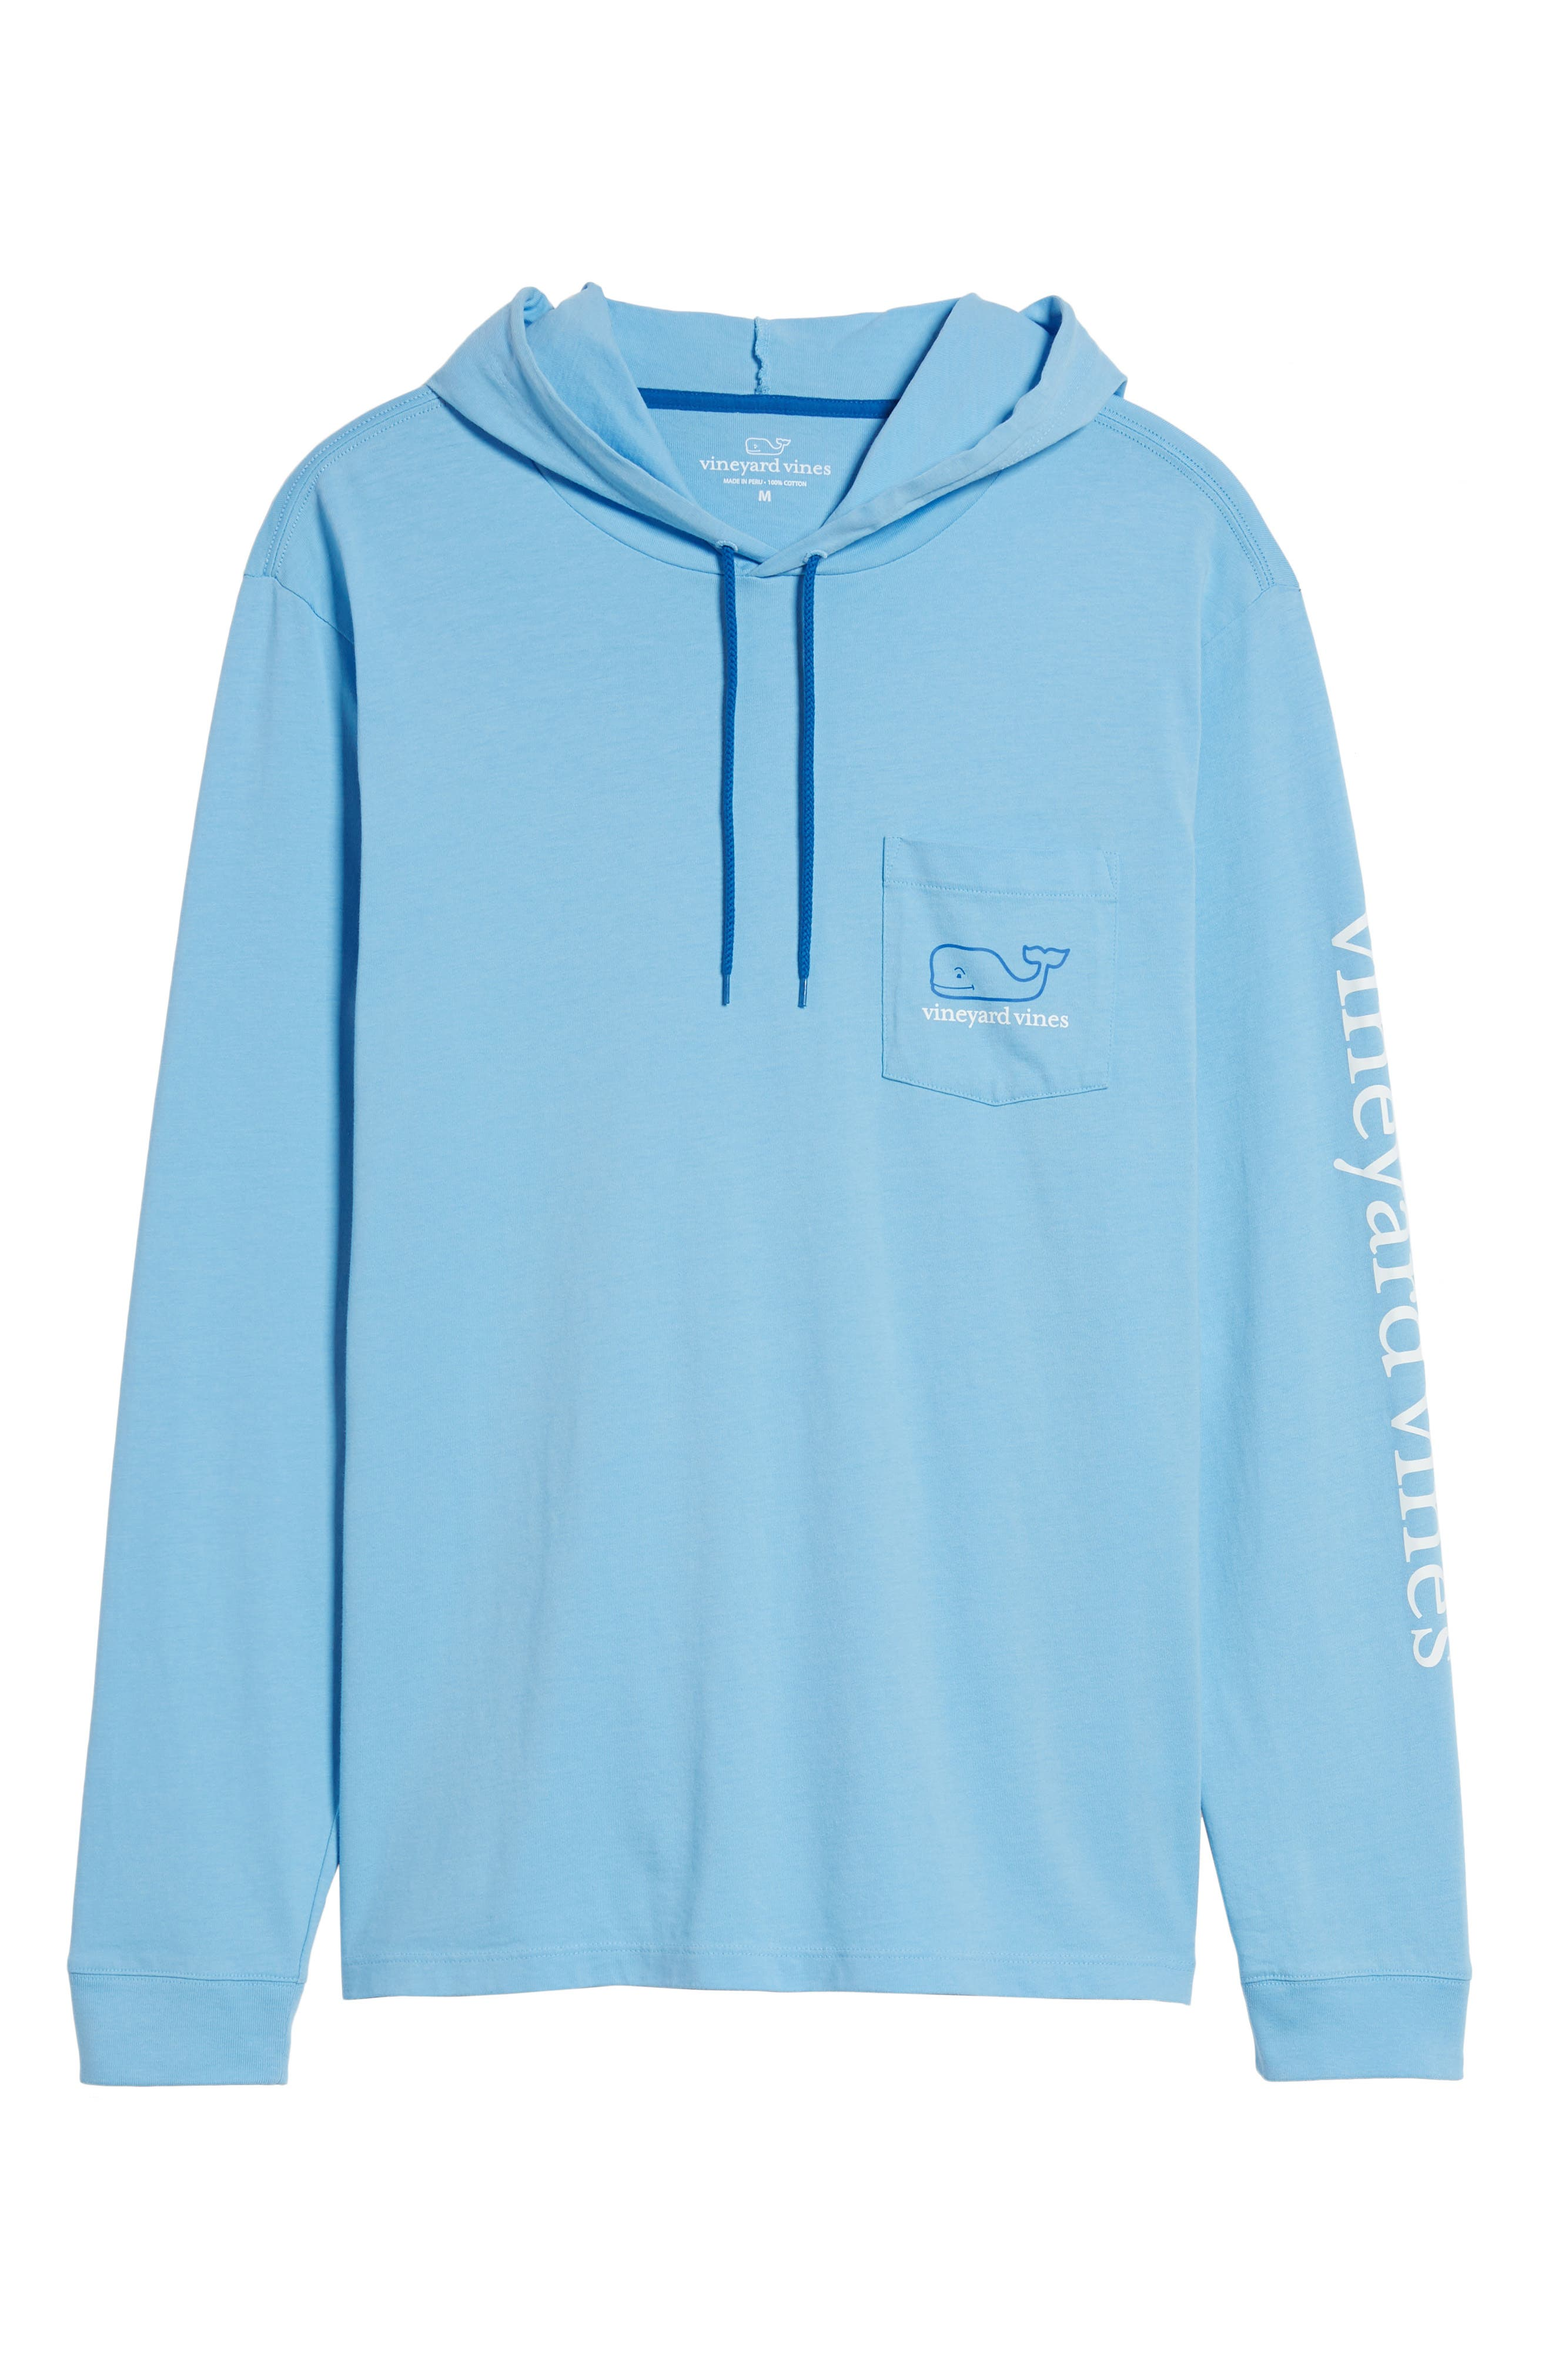 Whale Graphic Hooded T-Shirt,                             Main thumbnail 1, color,                             Ocean Breeze